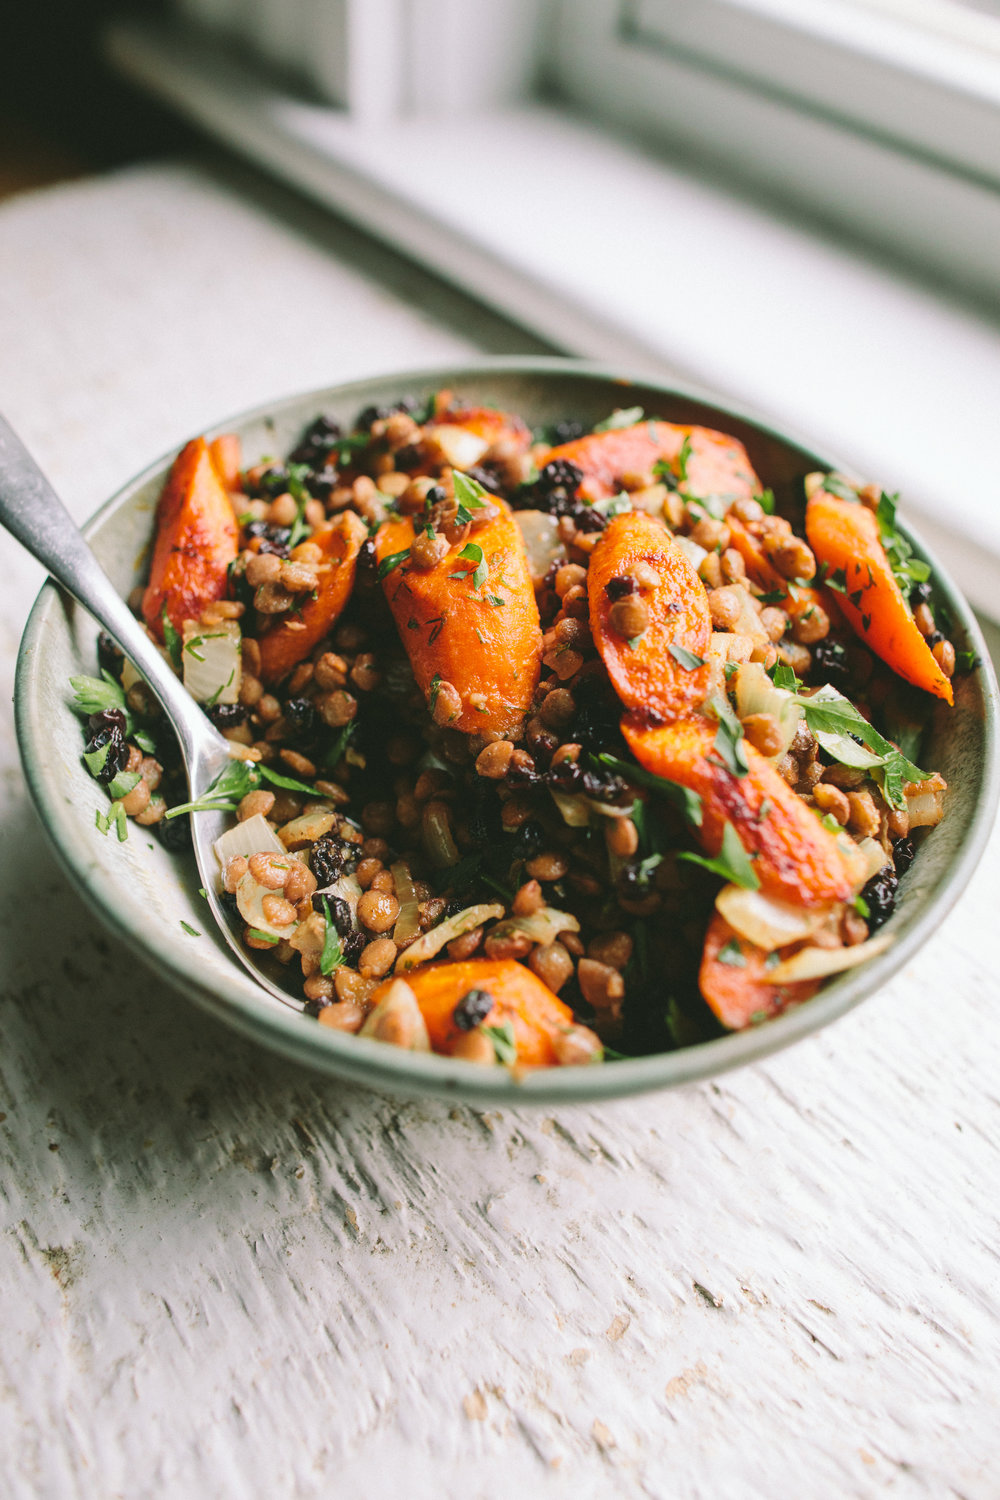 Moroccan Carrot and Lentil Salad | A Thought For Food (www.athoughtforfood.net)